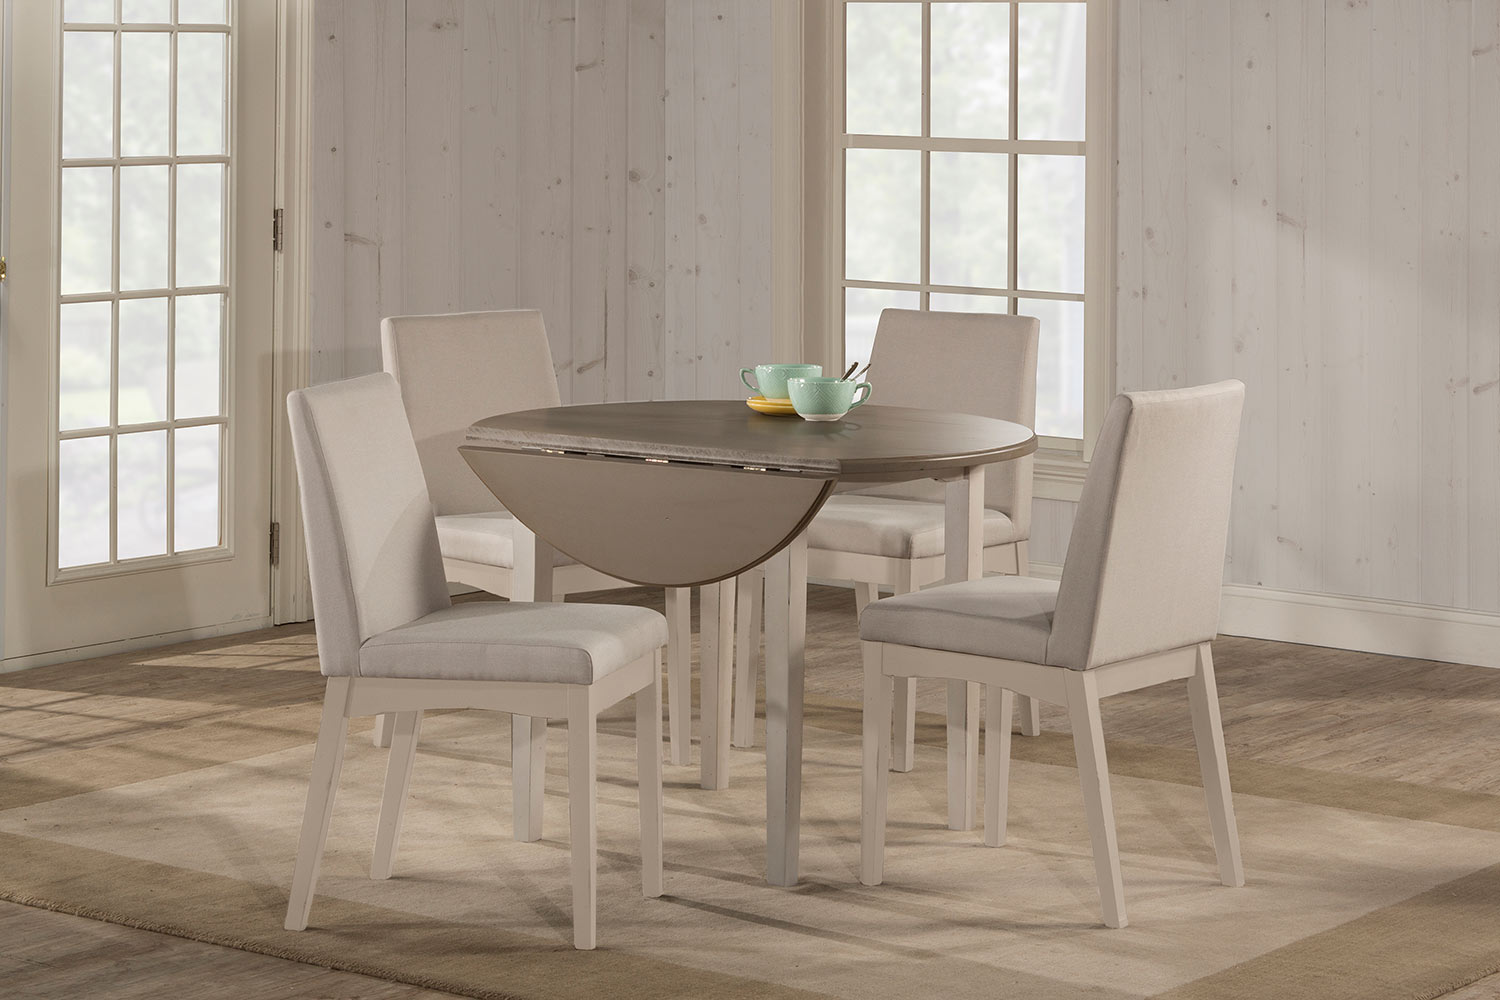 Hillsdale Clarion 5-Piece Round Dining Set with Upholstered Chairs - Sea White - Fog Fabric